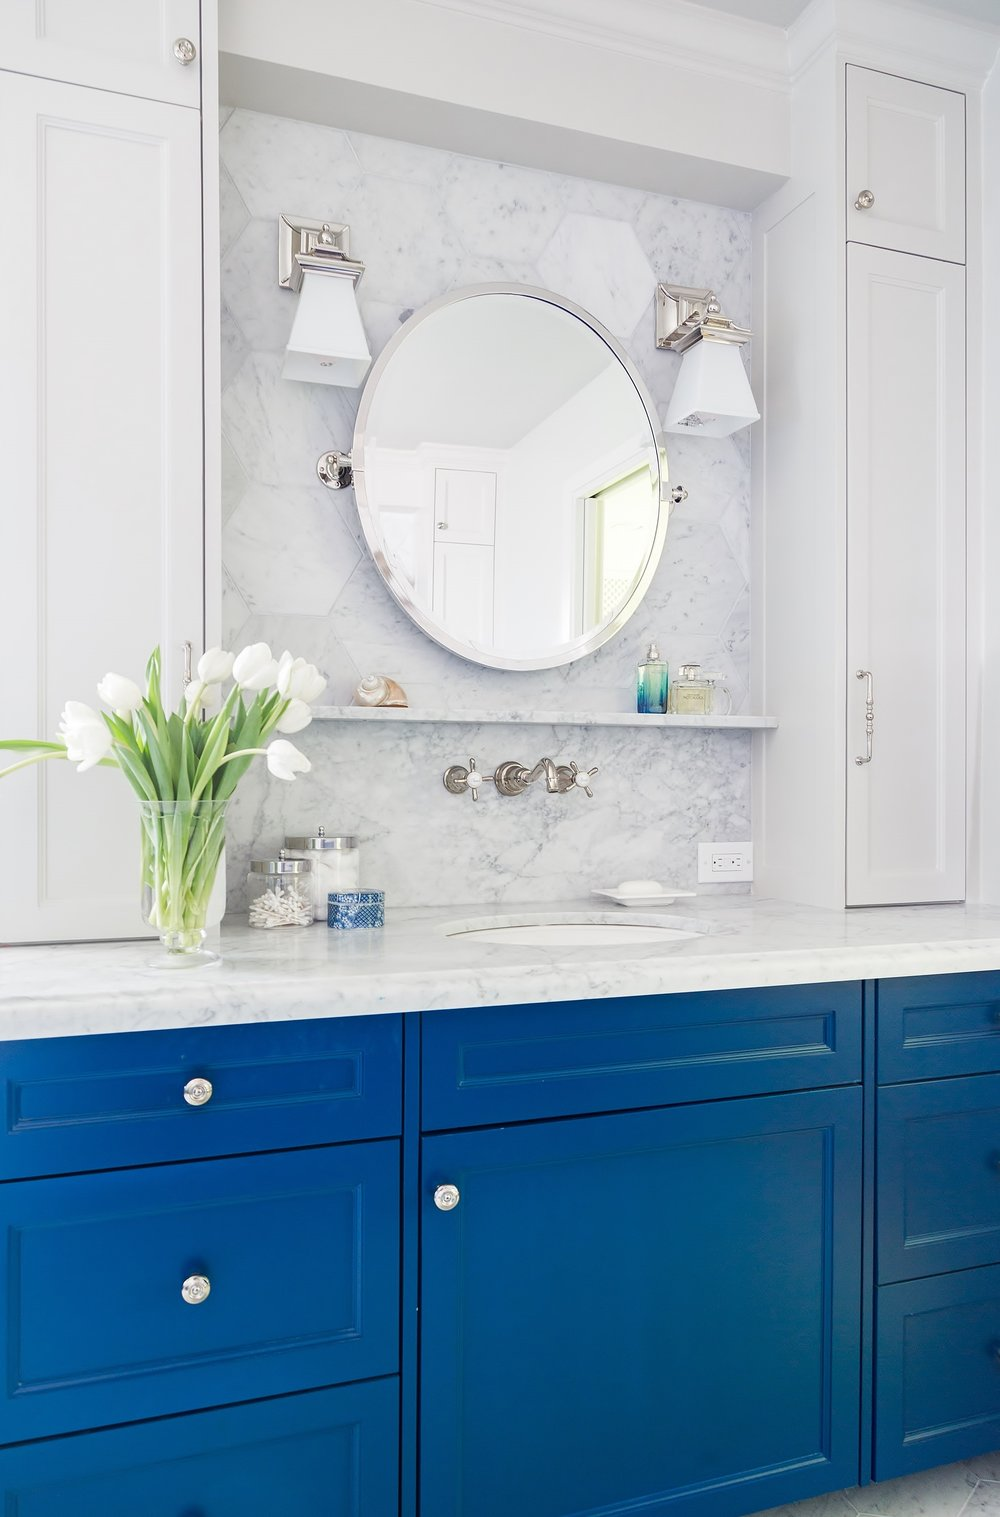 Blue lower cabinetry with Carrara marble in bathroom remodel | Carla Aston, Designer | Tori Aston, Photographer